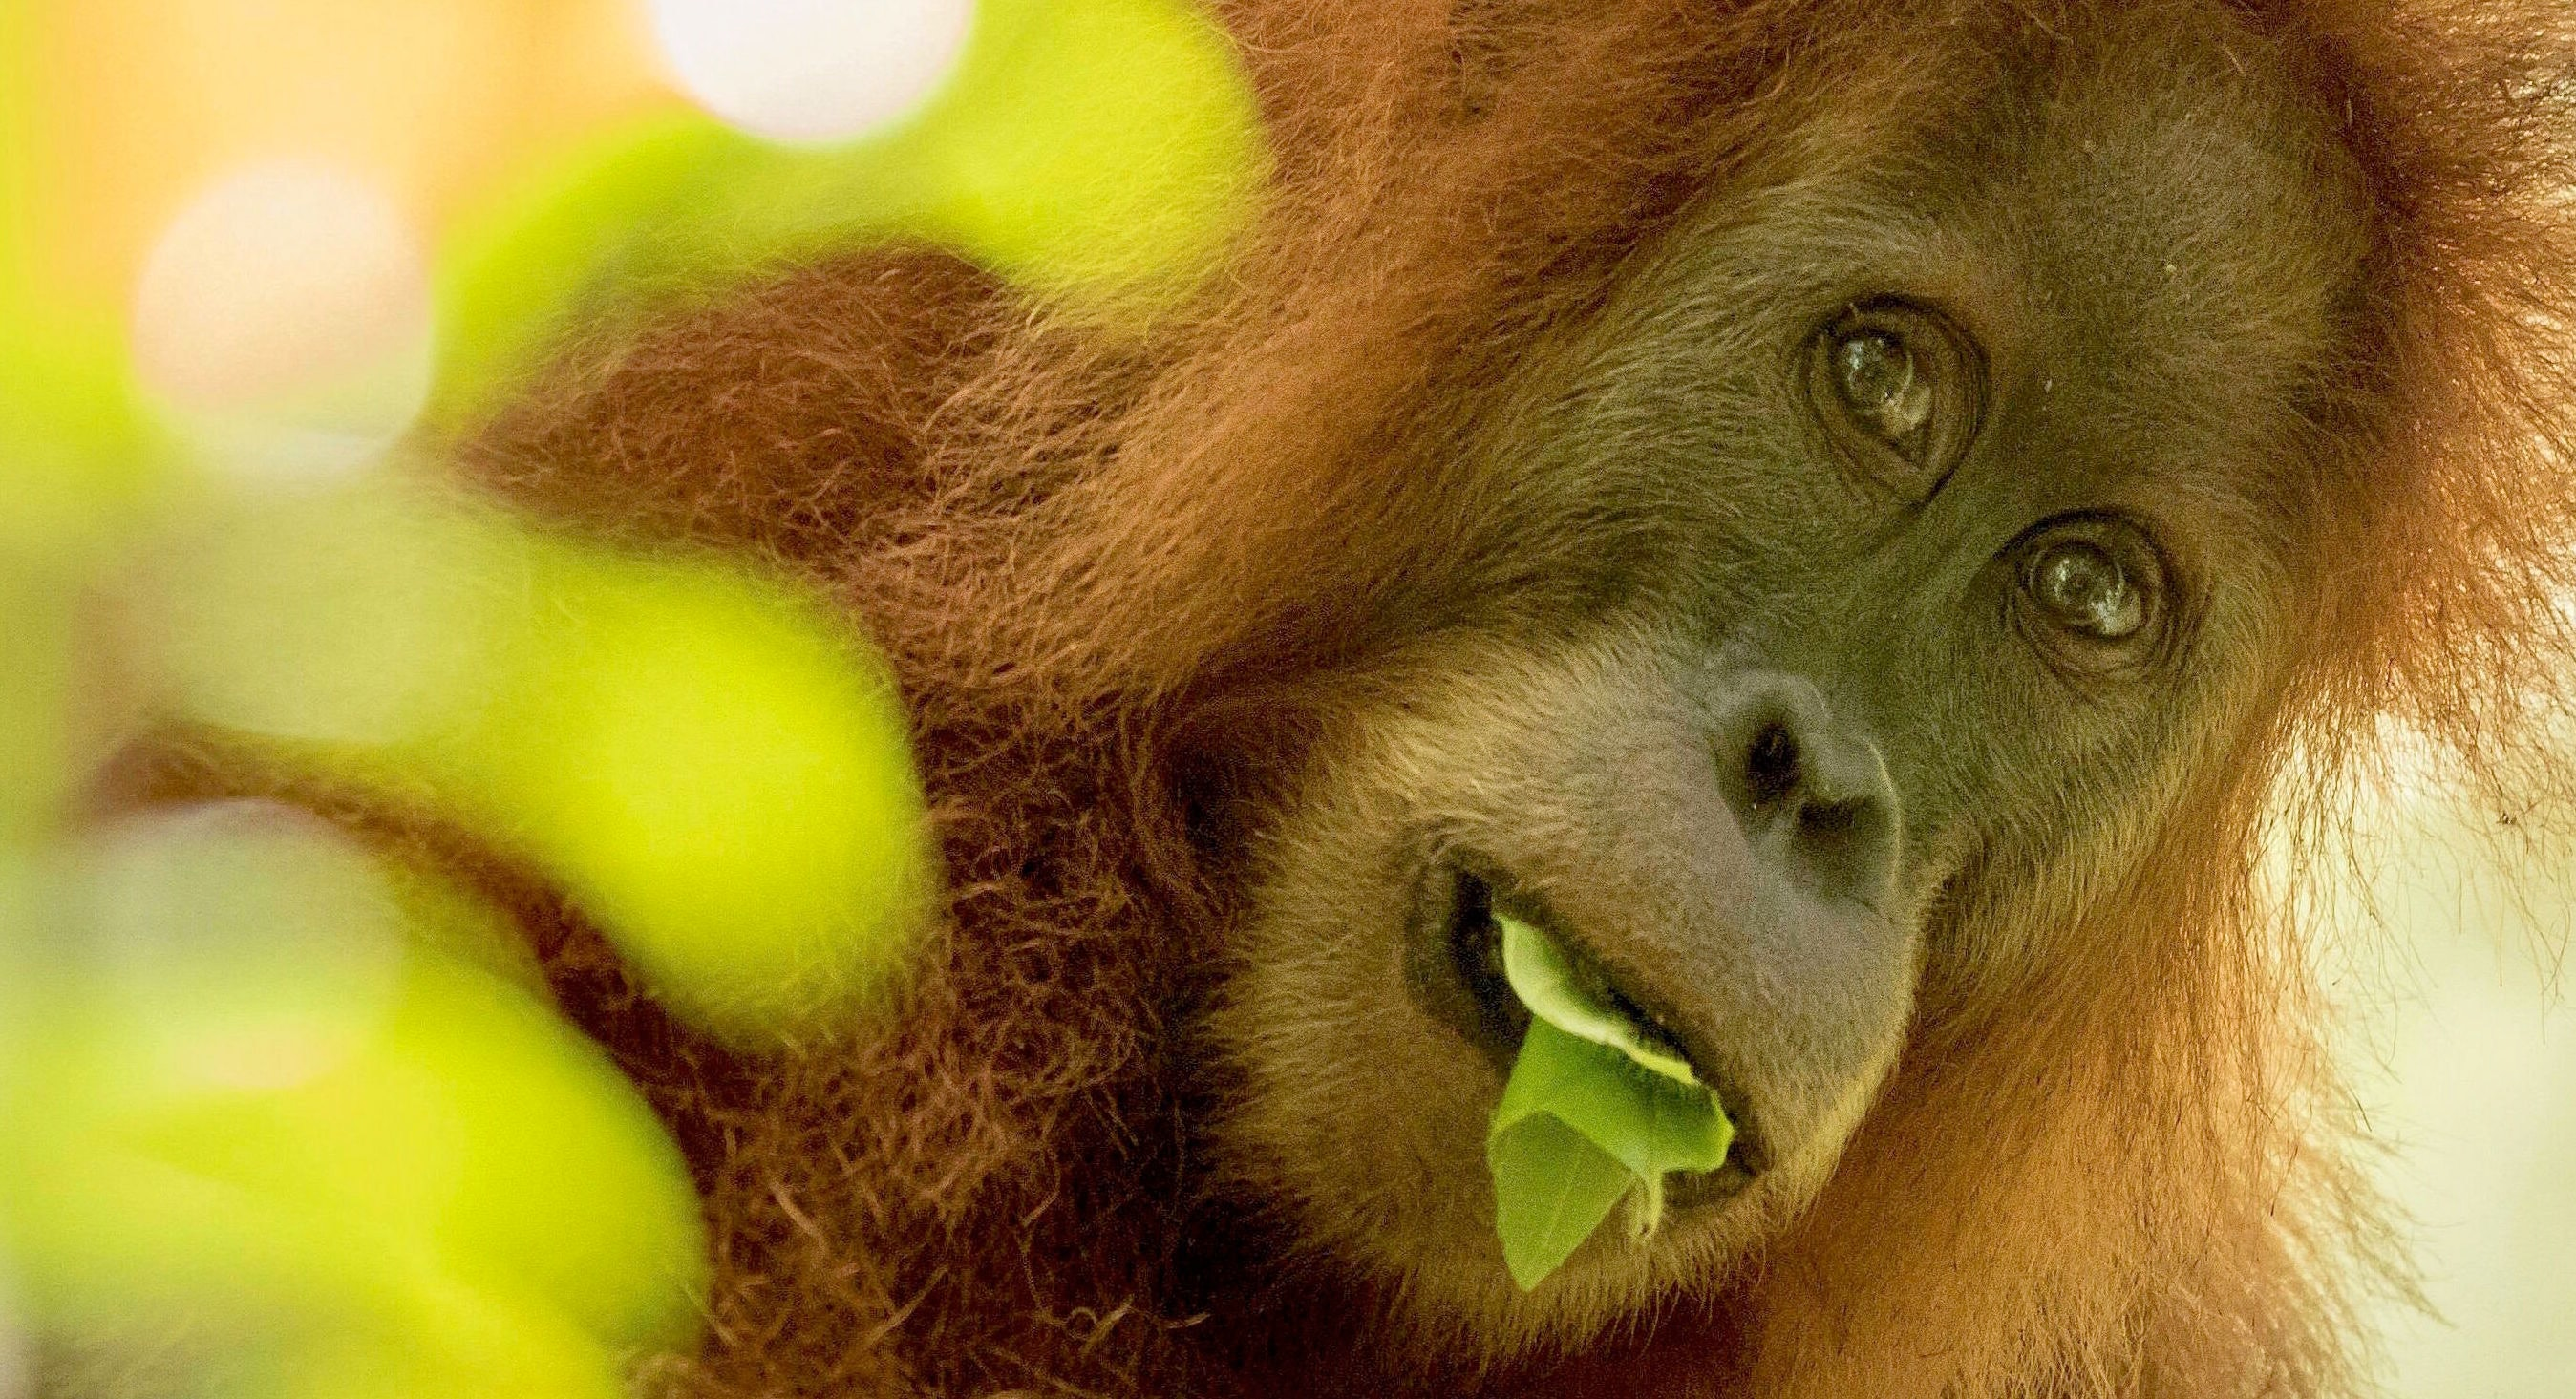 How Indonesia's election puts global biodiversity at stake with an impending war on palm oil